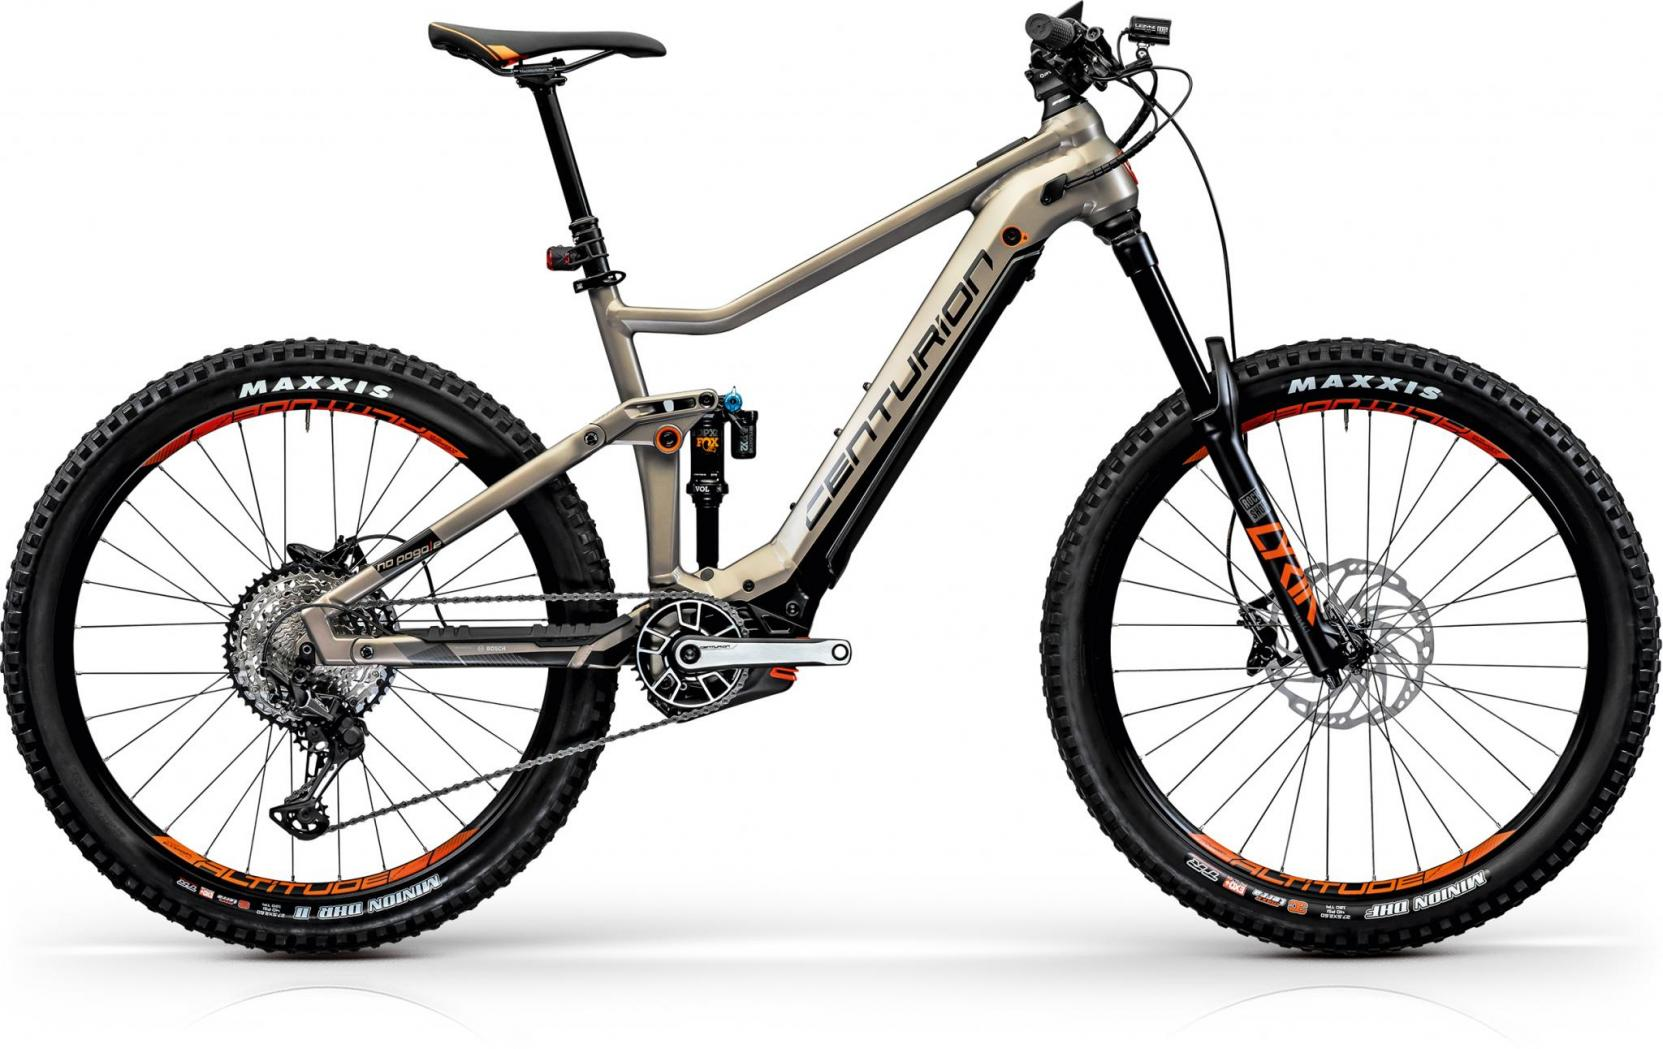 Centurion No Pogo E R2600i E-Mountainbike Fully